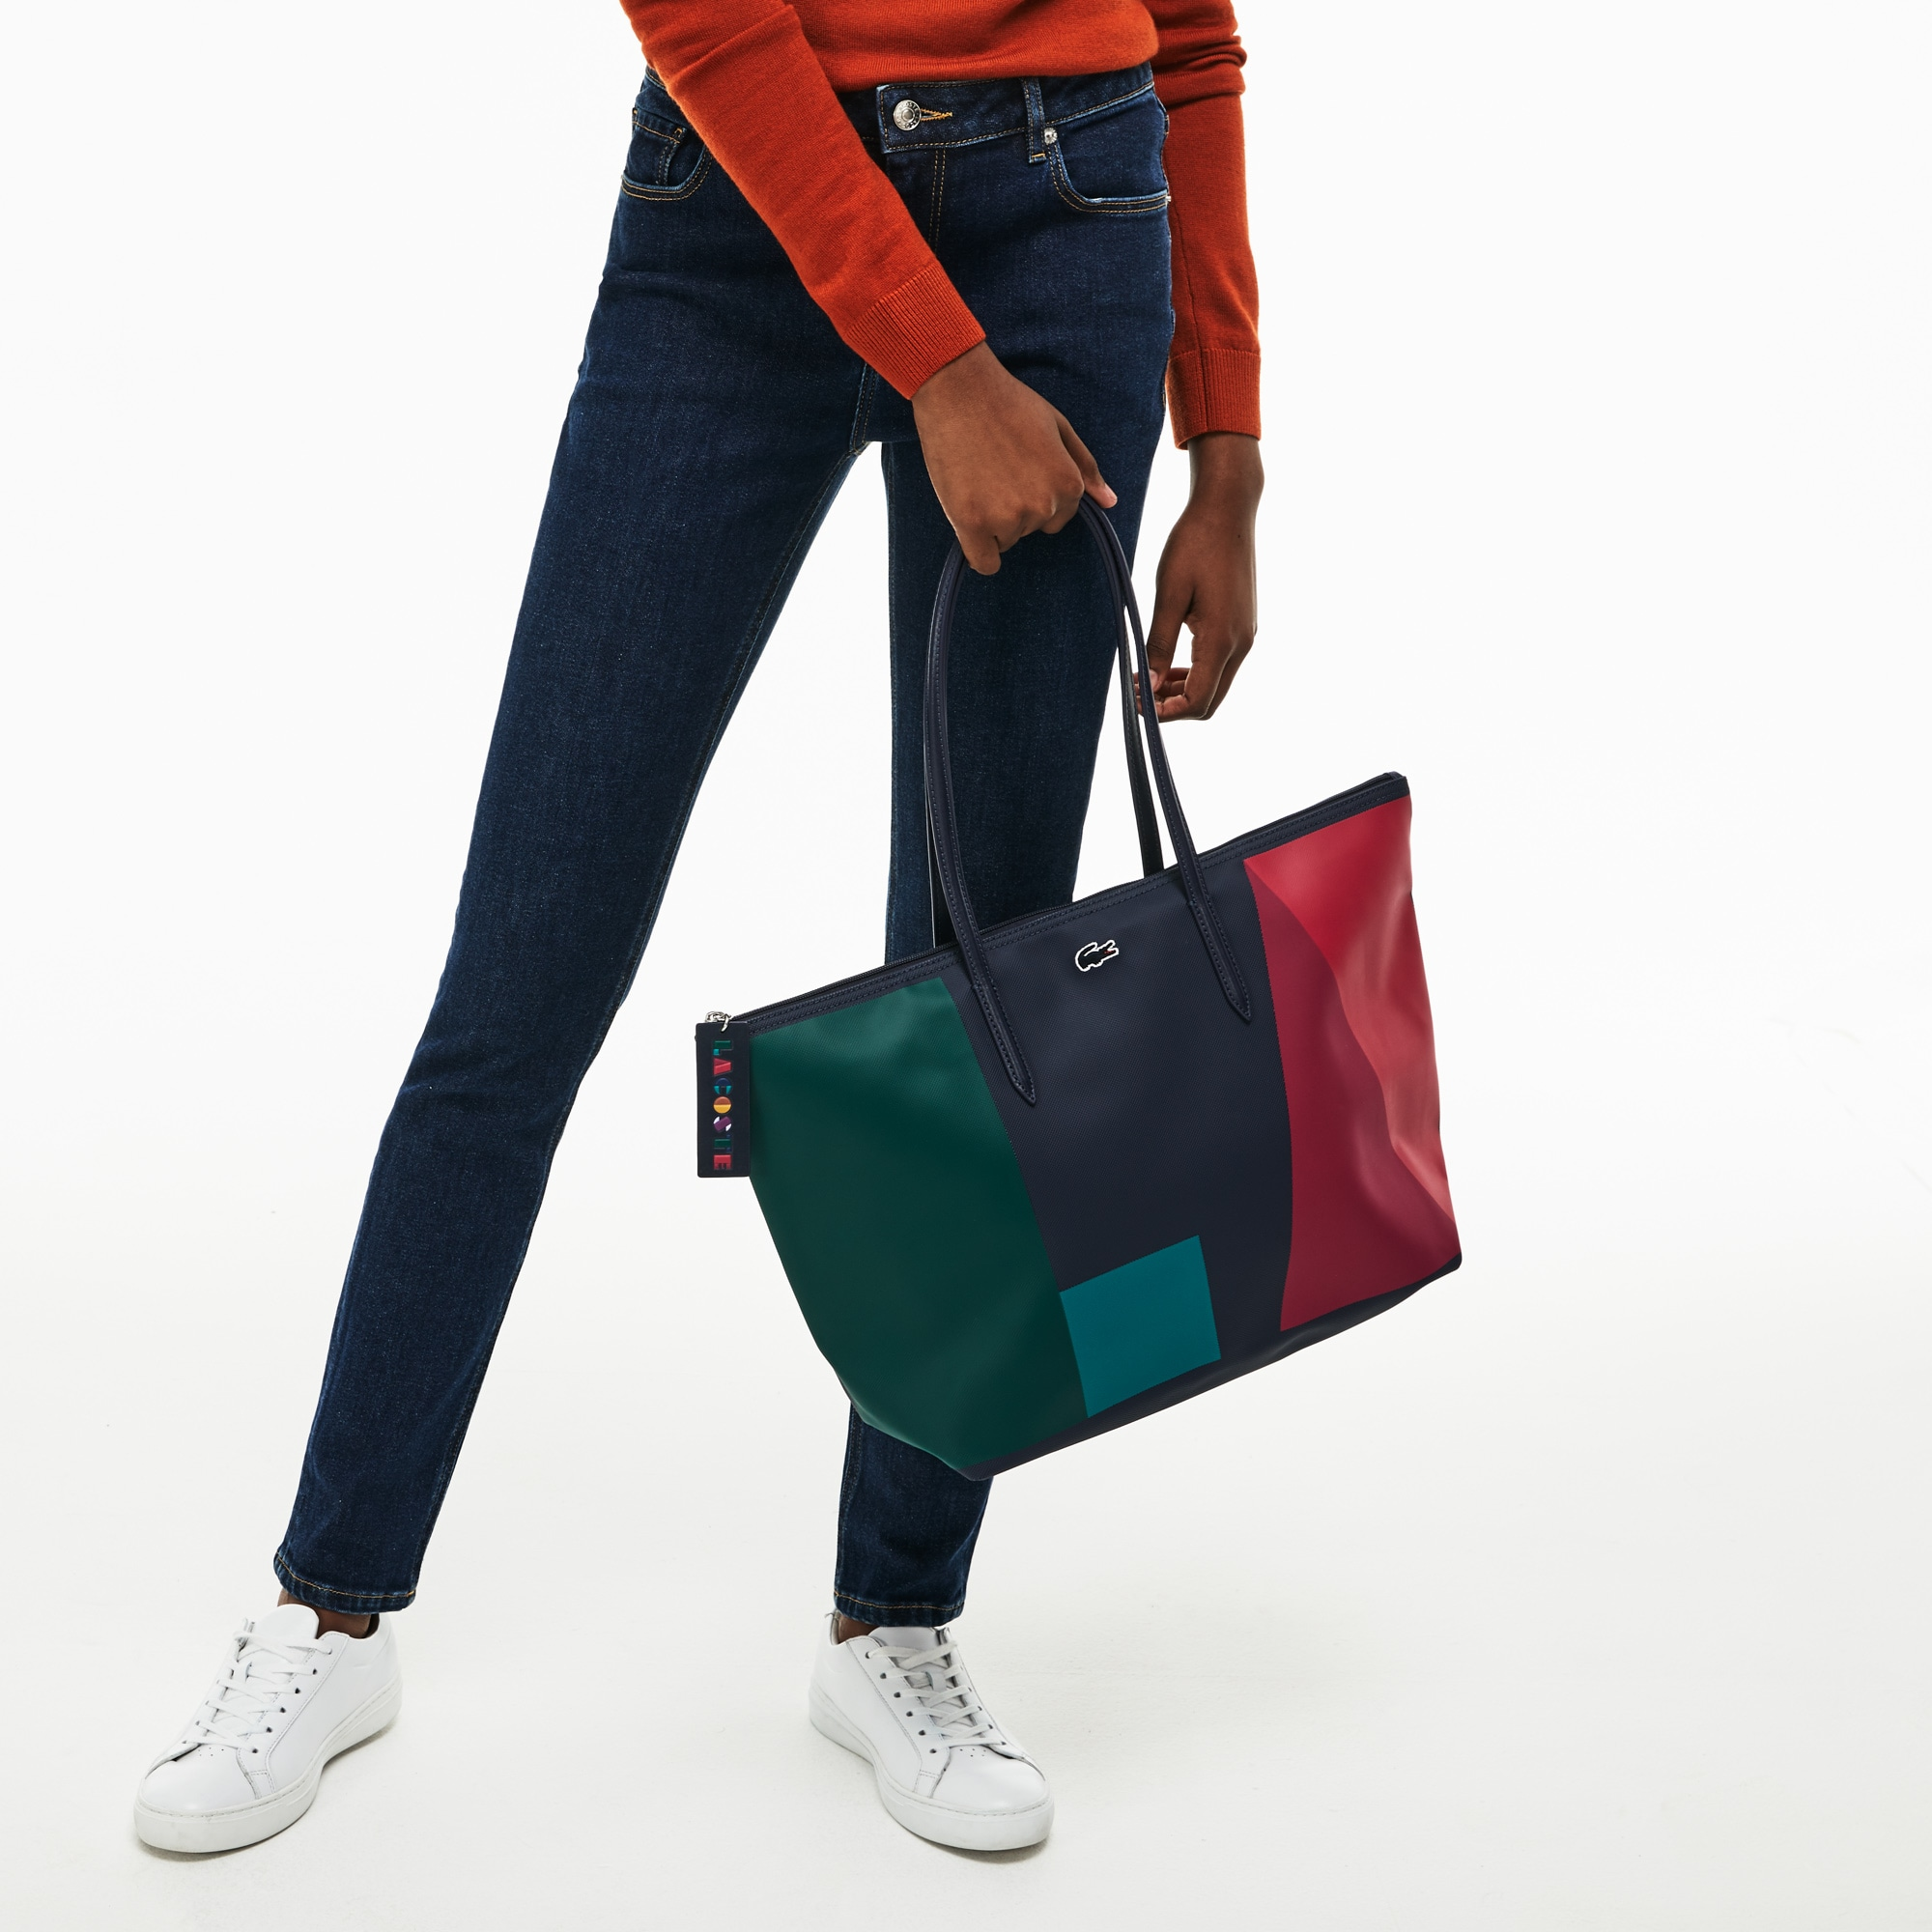 Shopping bag con cerniera ampia in petit piqué con stampa color block L.12.12 Concept da donna